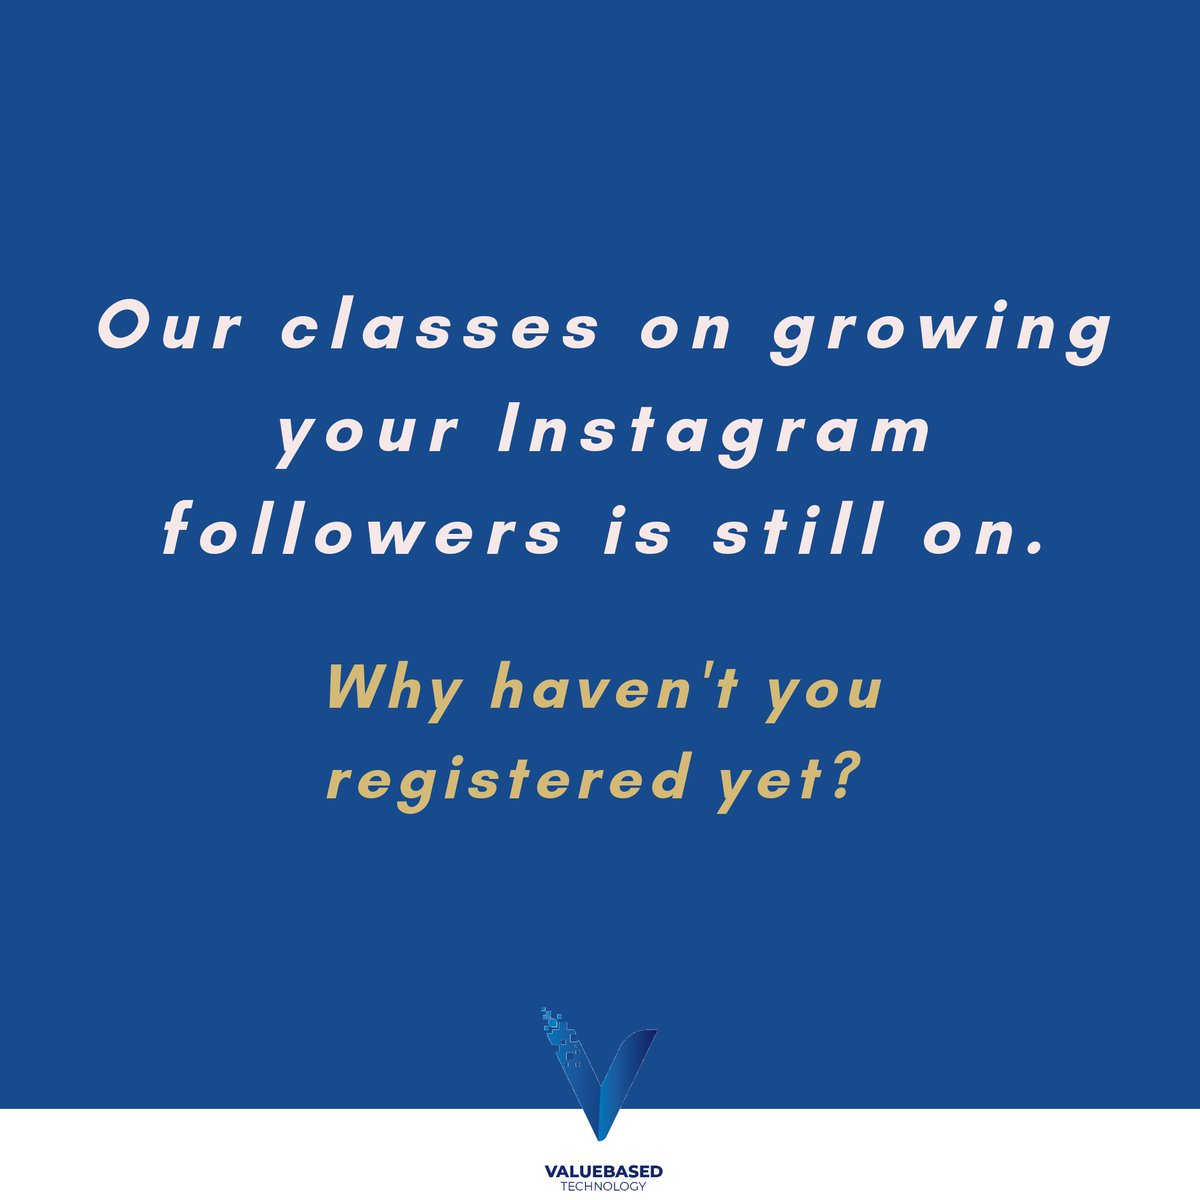 The gain class is still open. Send a DM today and get the best deal. If you're looking to design a website or logo? Look no further..  Visit http://www.valuebasedtechnology.com  #valuebasedtechnology #webdesign #website #abujasales #businessowner #abujaschools #logodesign #websitebuildepic.twitter.com/xO2dbtKT0P